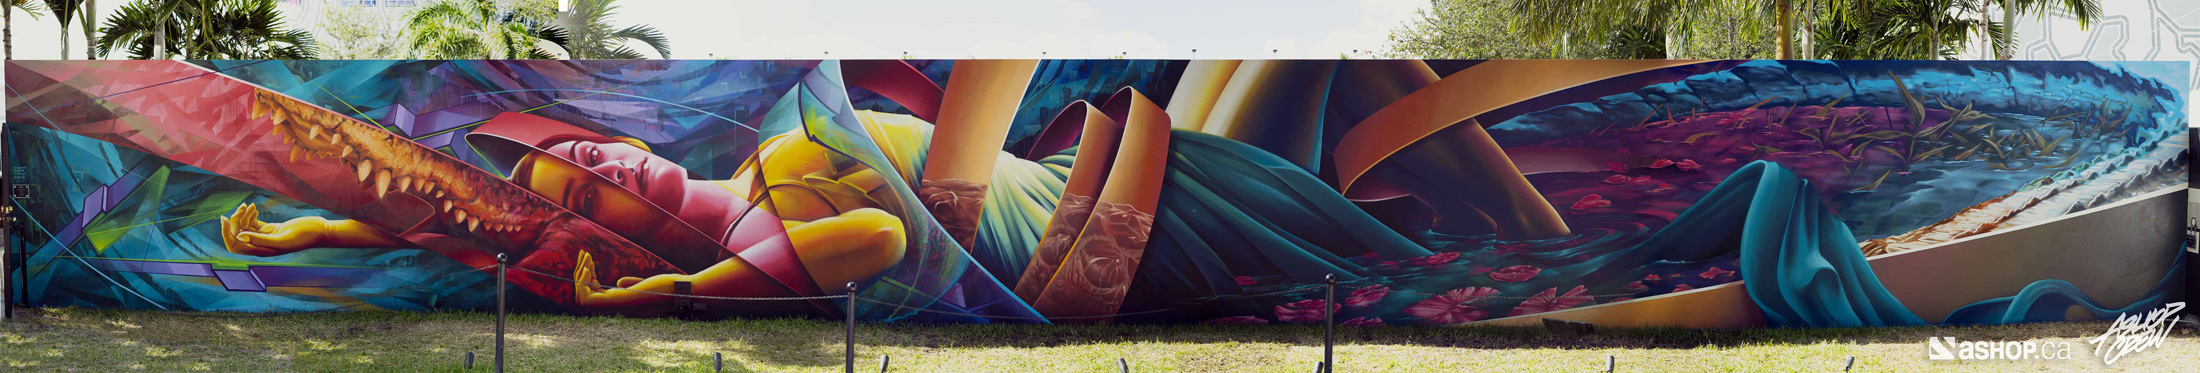 Wynwood-Wall-2018-pan-shot_credit-Ashop-Crew_website.jpg